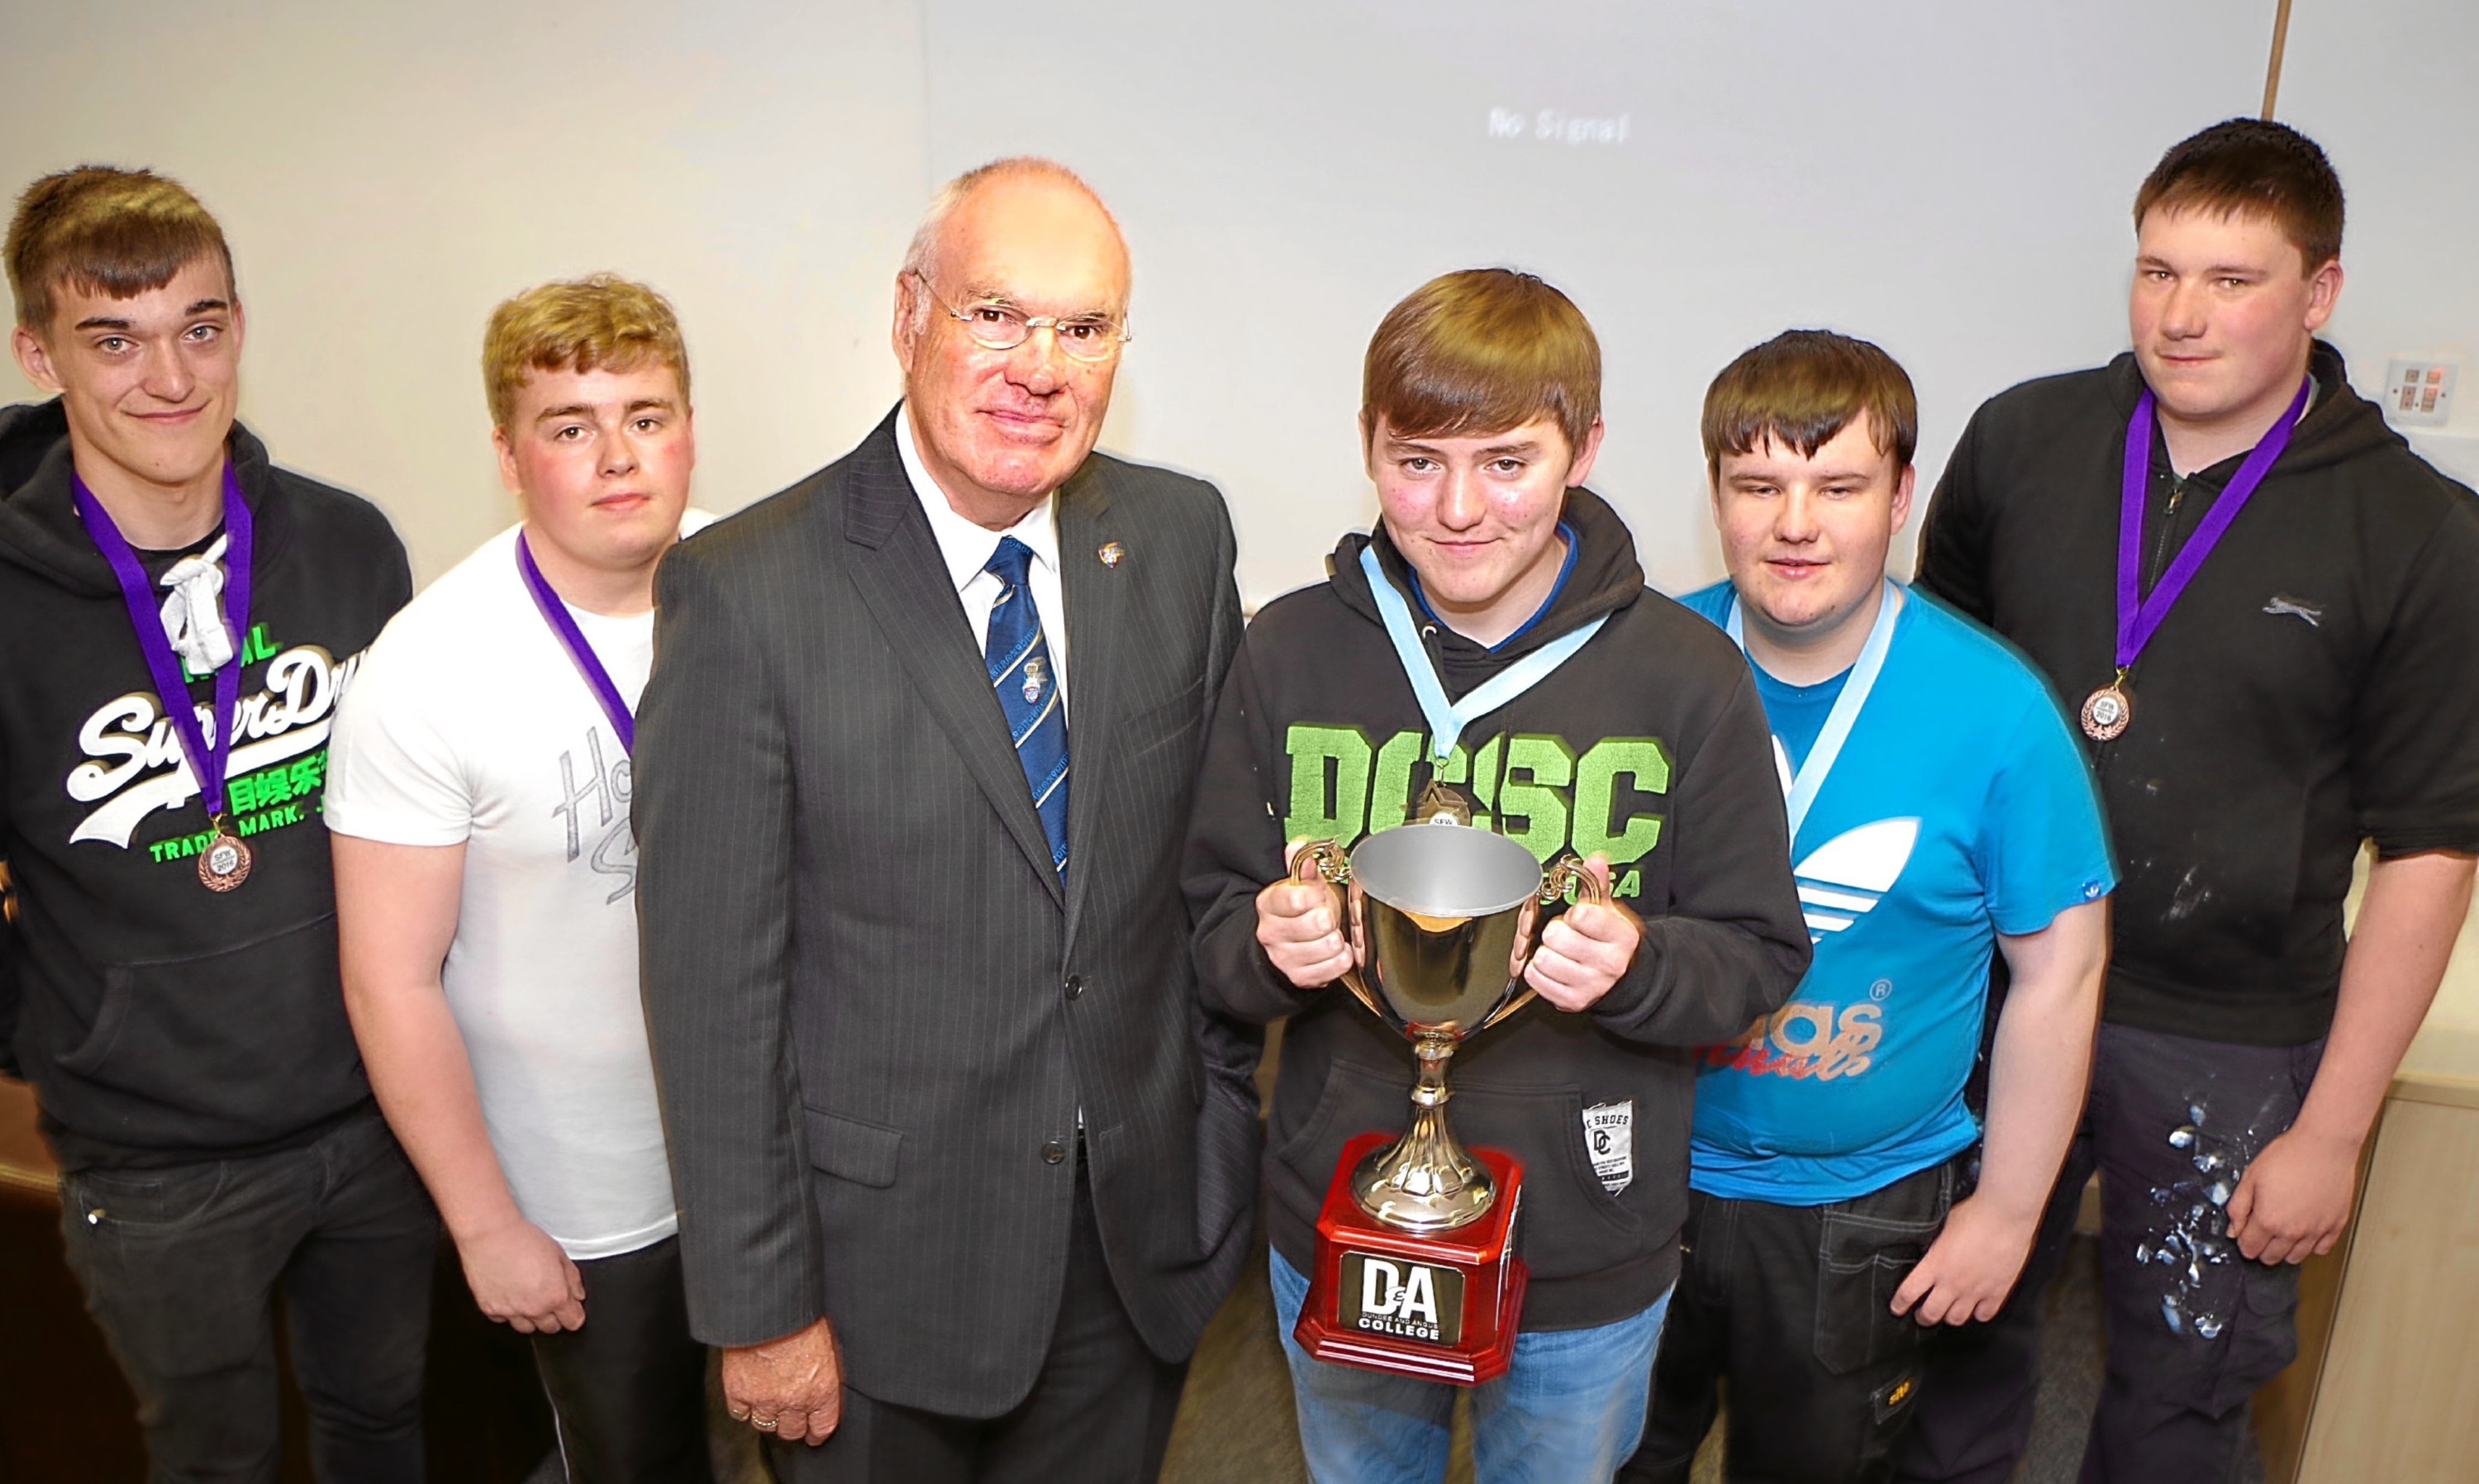 Deacon convenor of the Nine Trades of Dundee, Murray Petrie, presents John McCafferty with the trophy for winning a construction skills contest at D&A College, Arbroath Campus. Looking on are competition finalists, from left - Jenson Pye, Lee Robertson, Andrew Kinnear and Fraser MacIntosh.